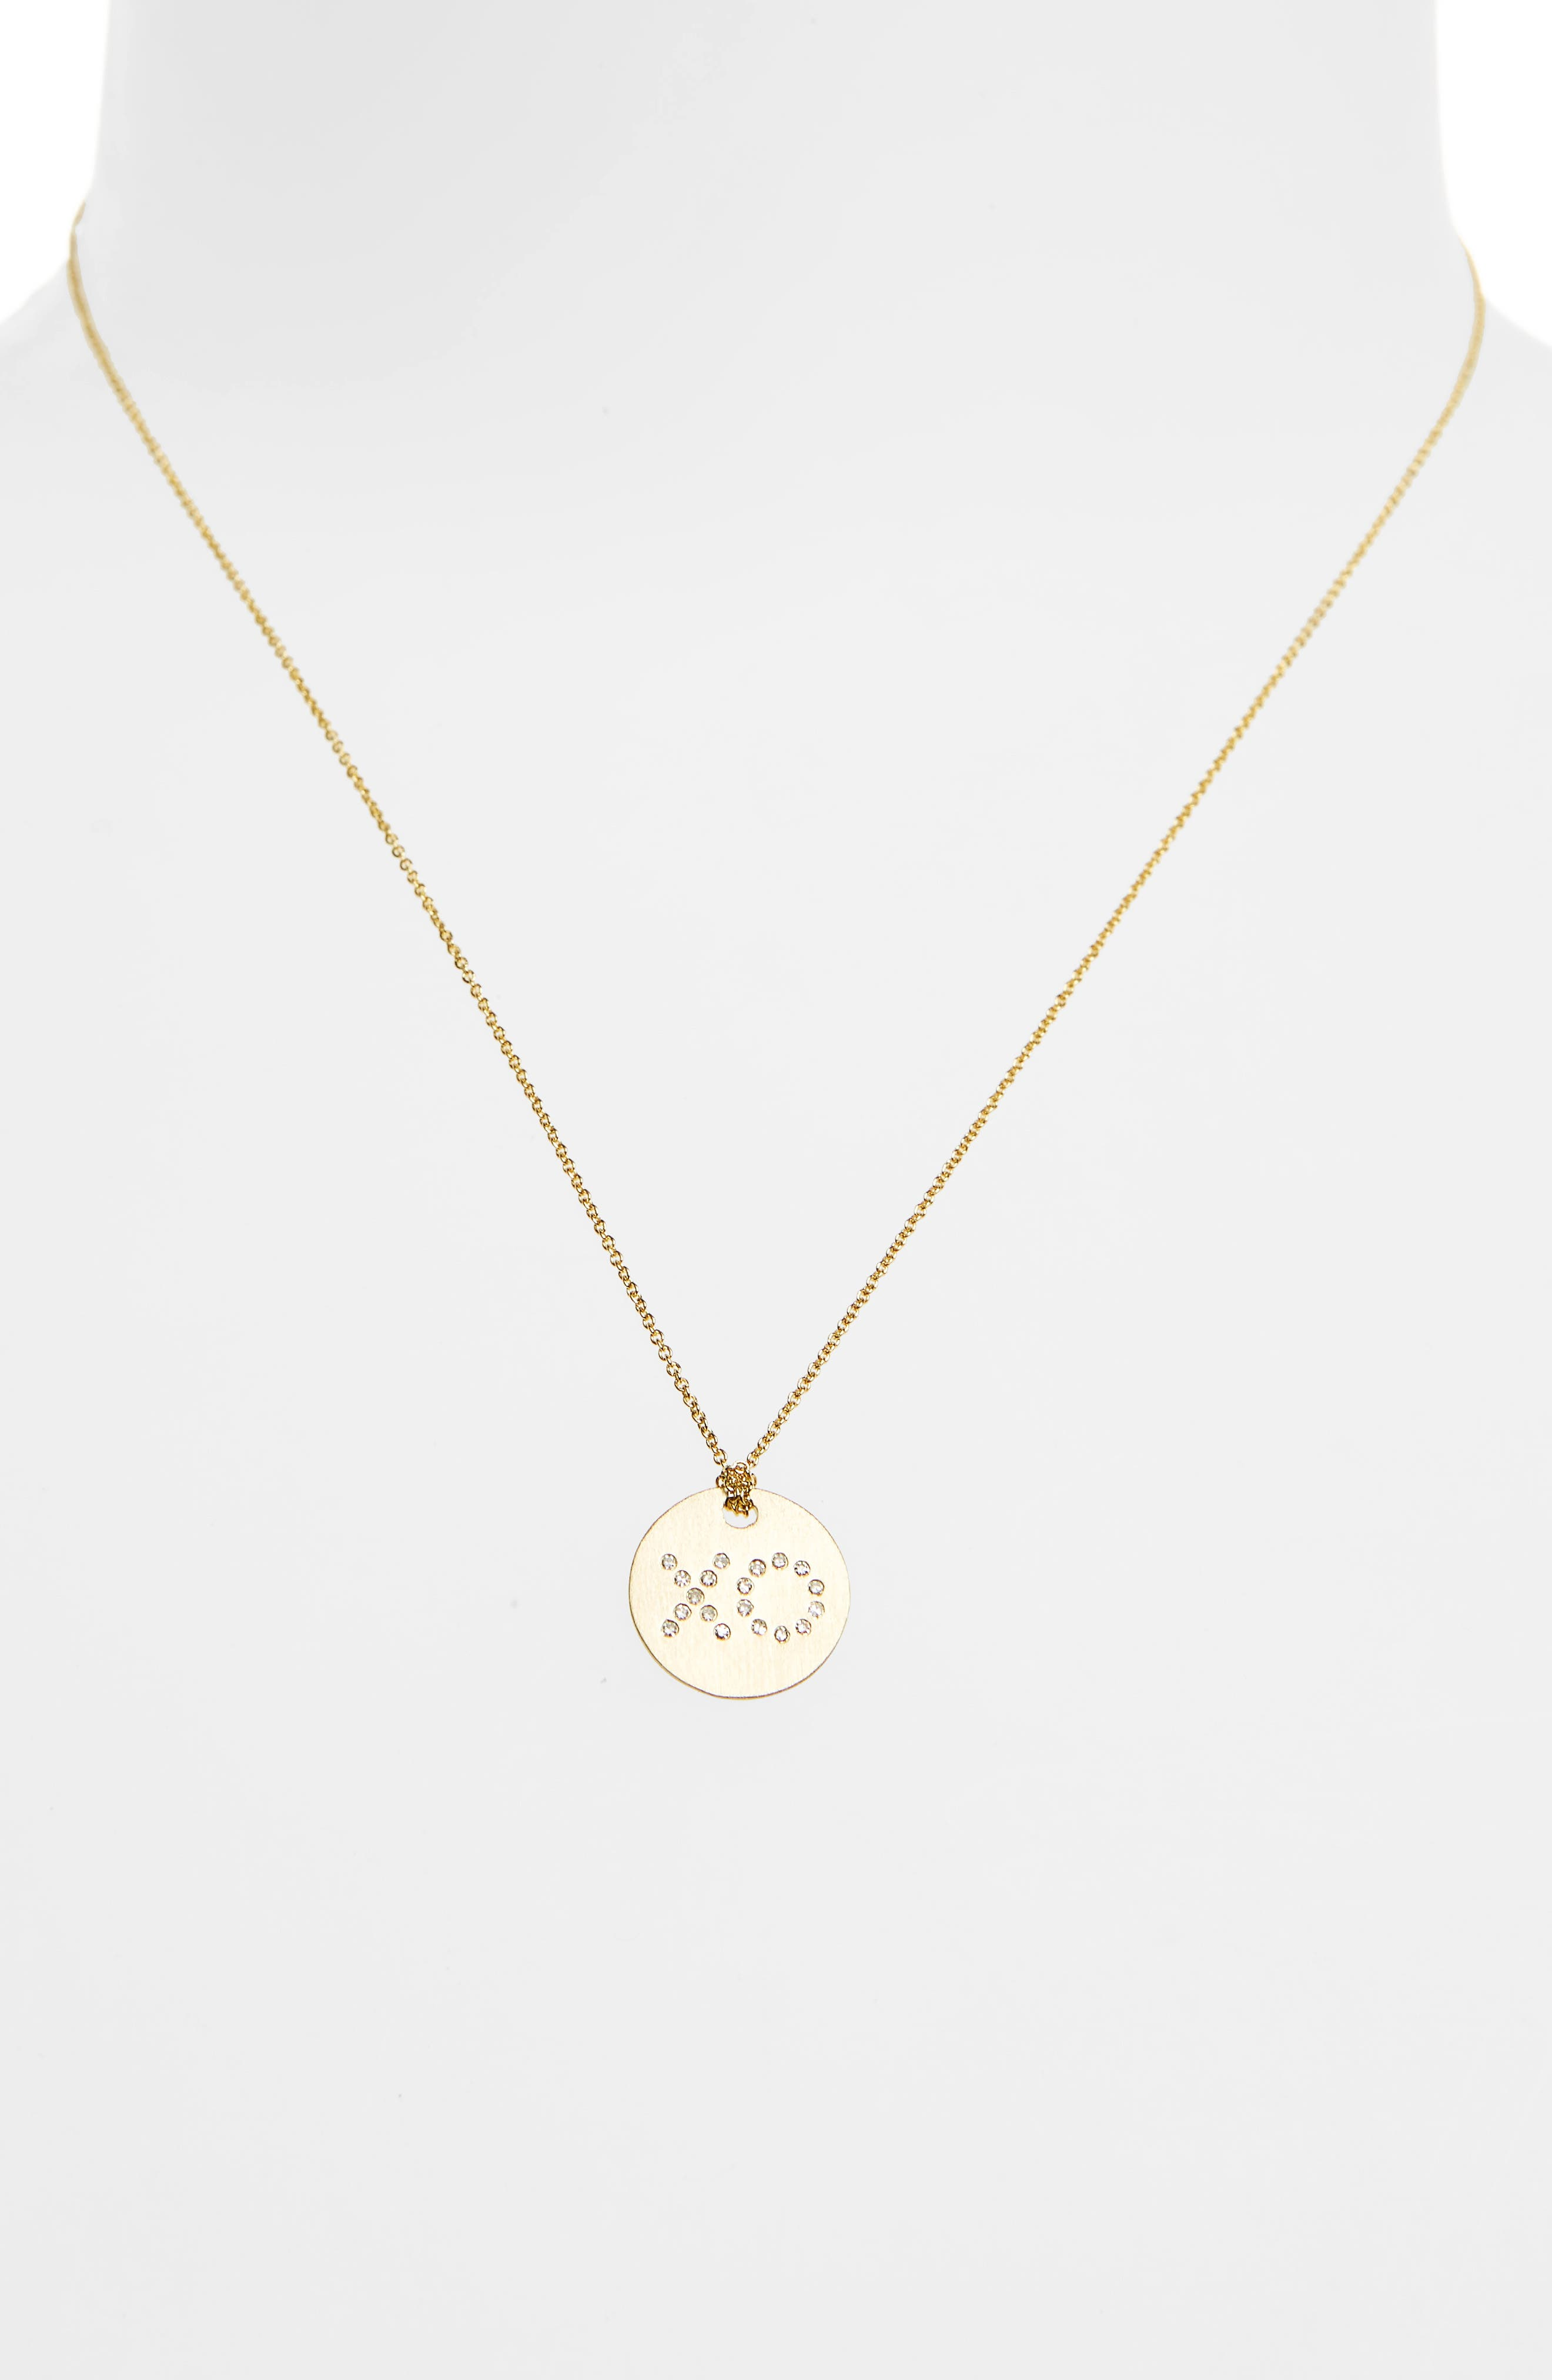 Diamond XO Medallion Necklace,                             Alternate thumbnail 2, color,                             YELLOW GOLD